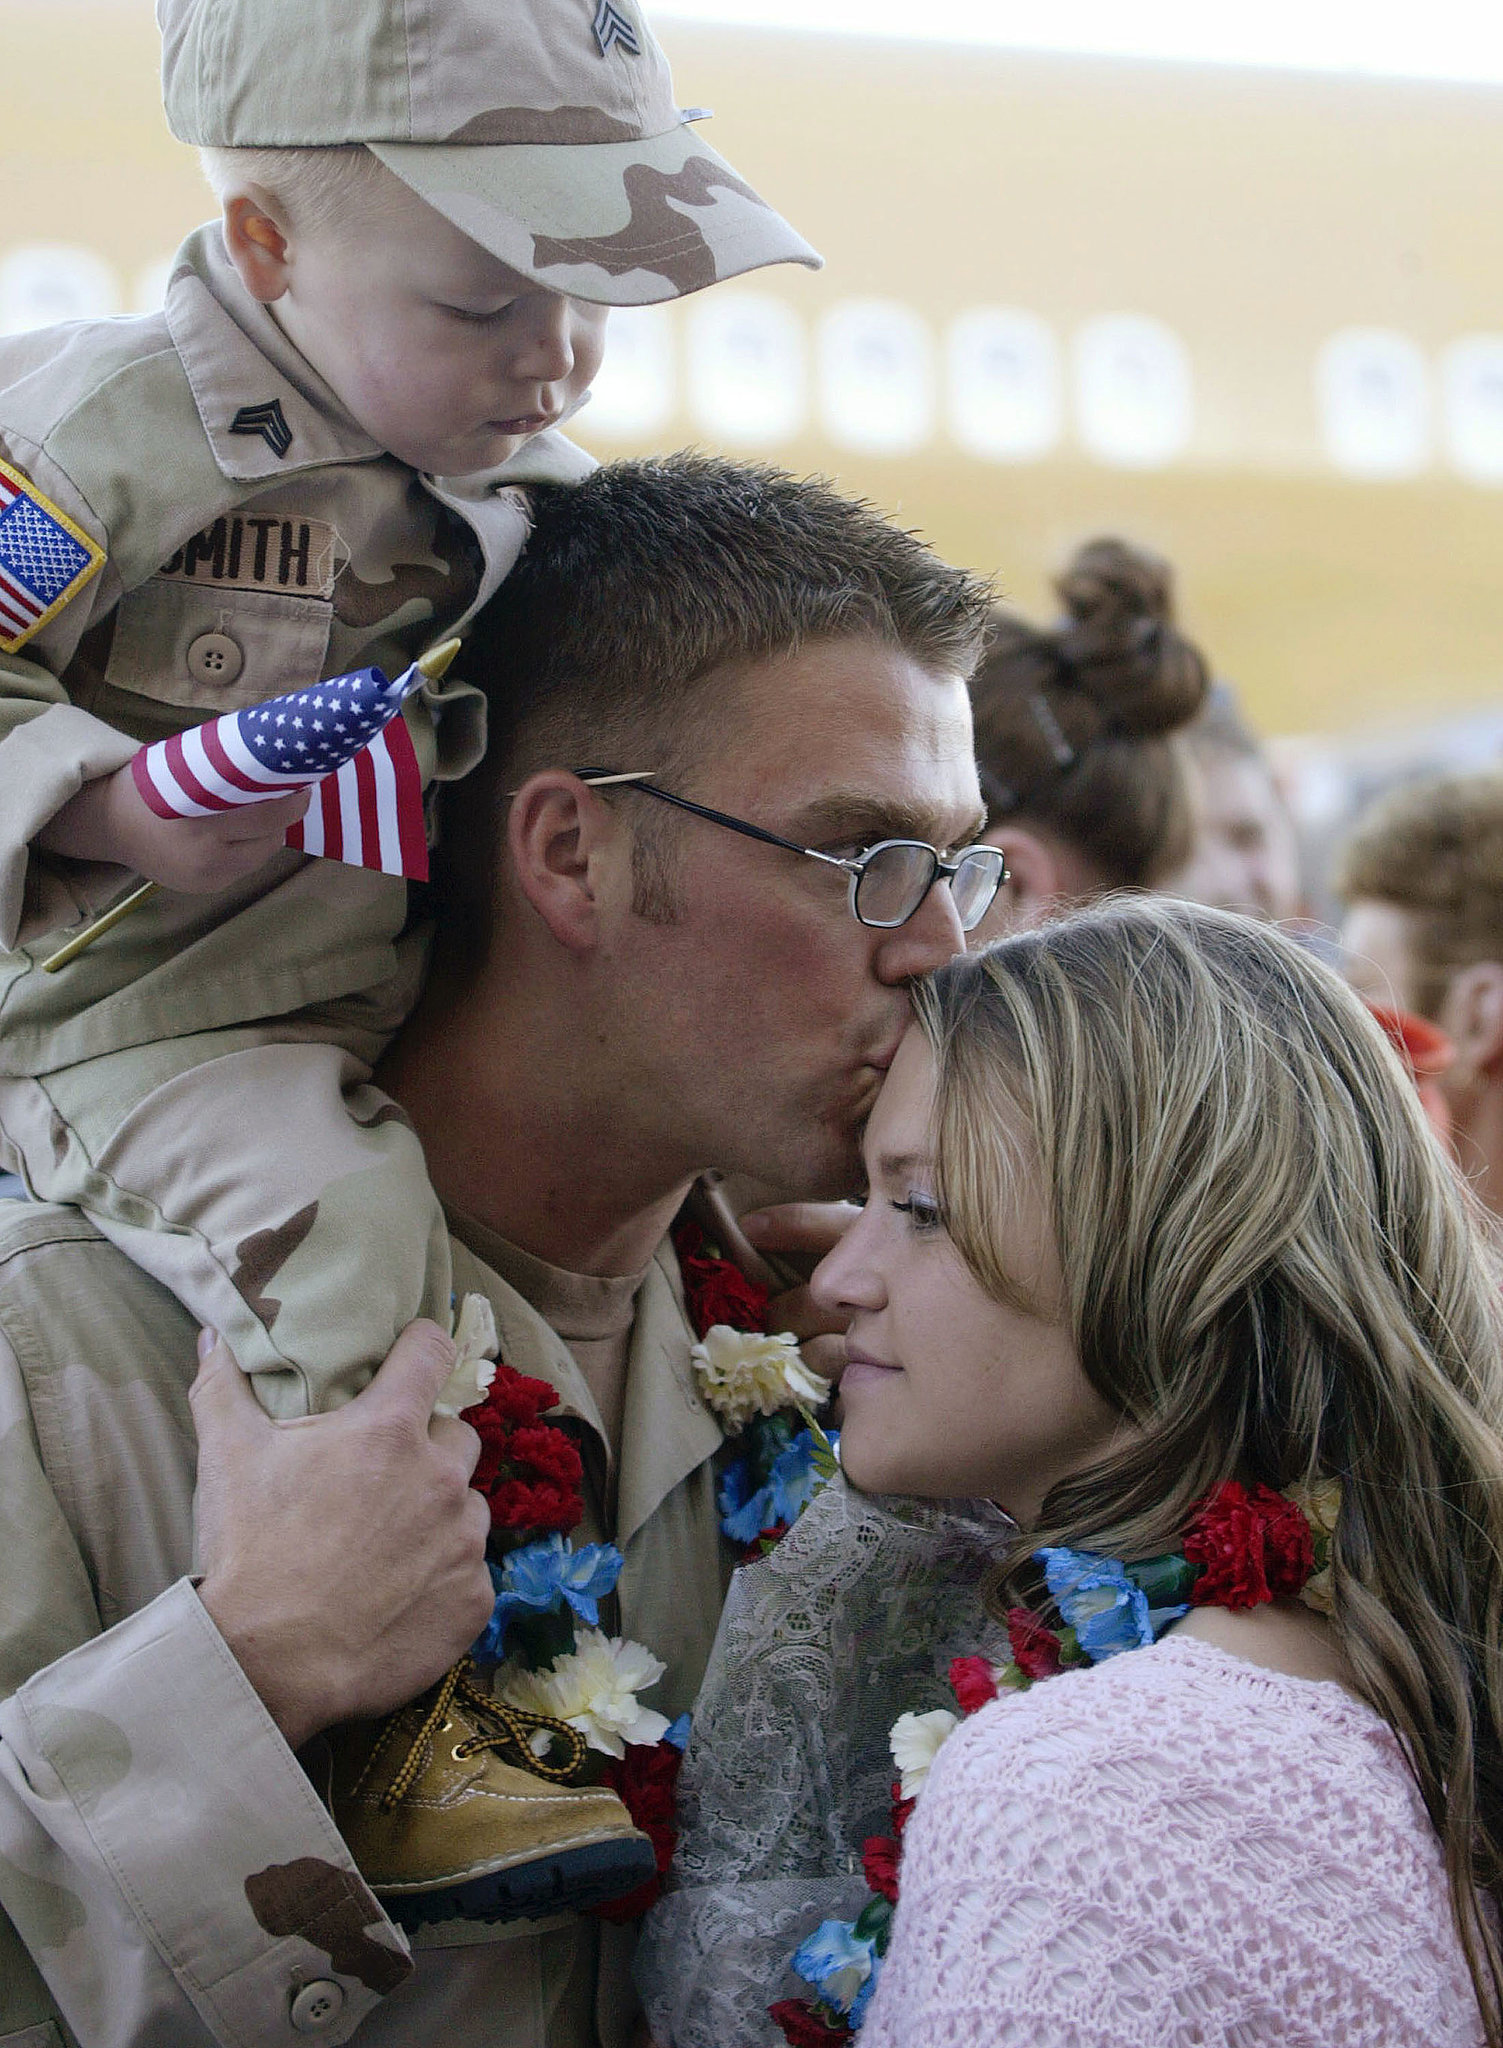 In 2004, Army Sgt. Cody Smith kisses his wife, Kelsie, while his nephew Brandon looks on in Salt Lake City.